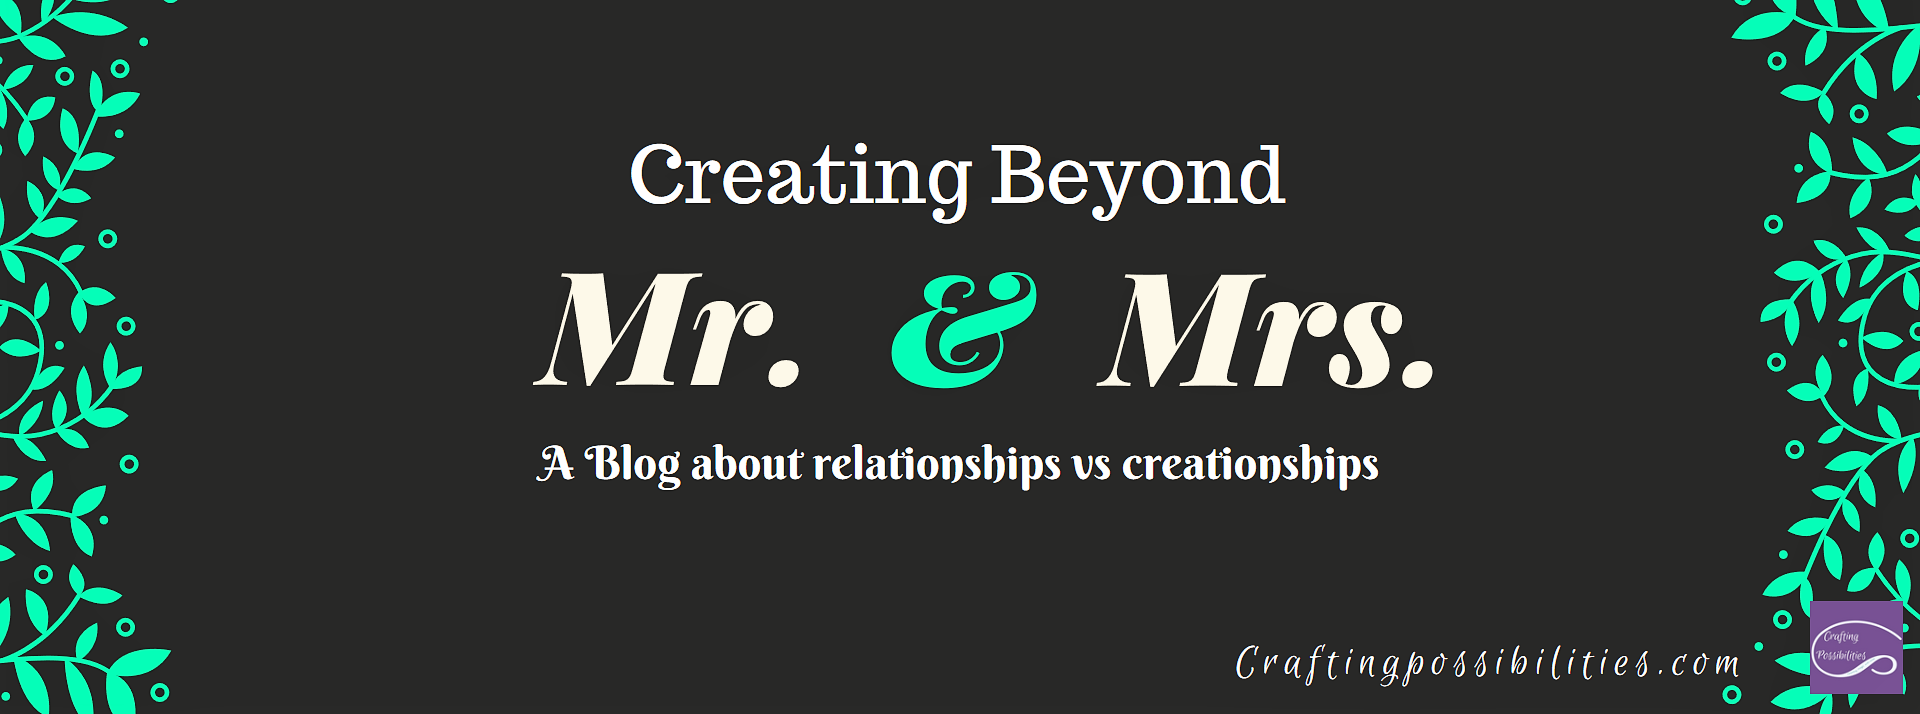 Creating beyond Mr and Mrs